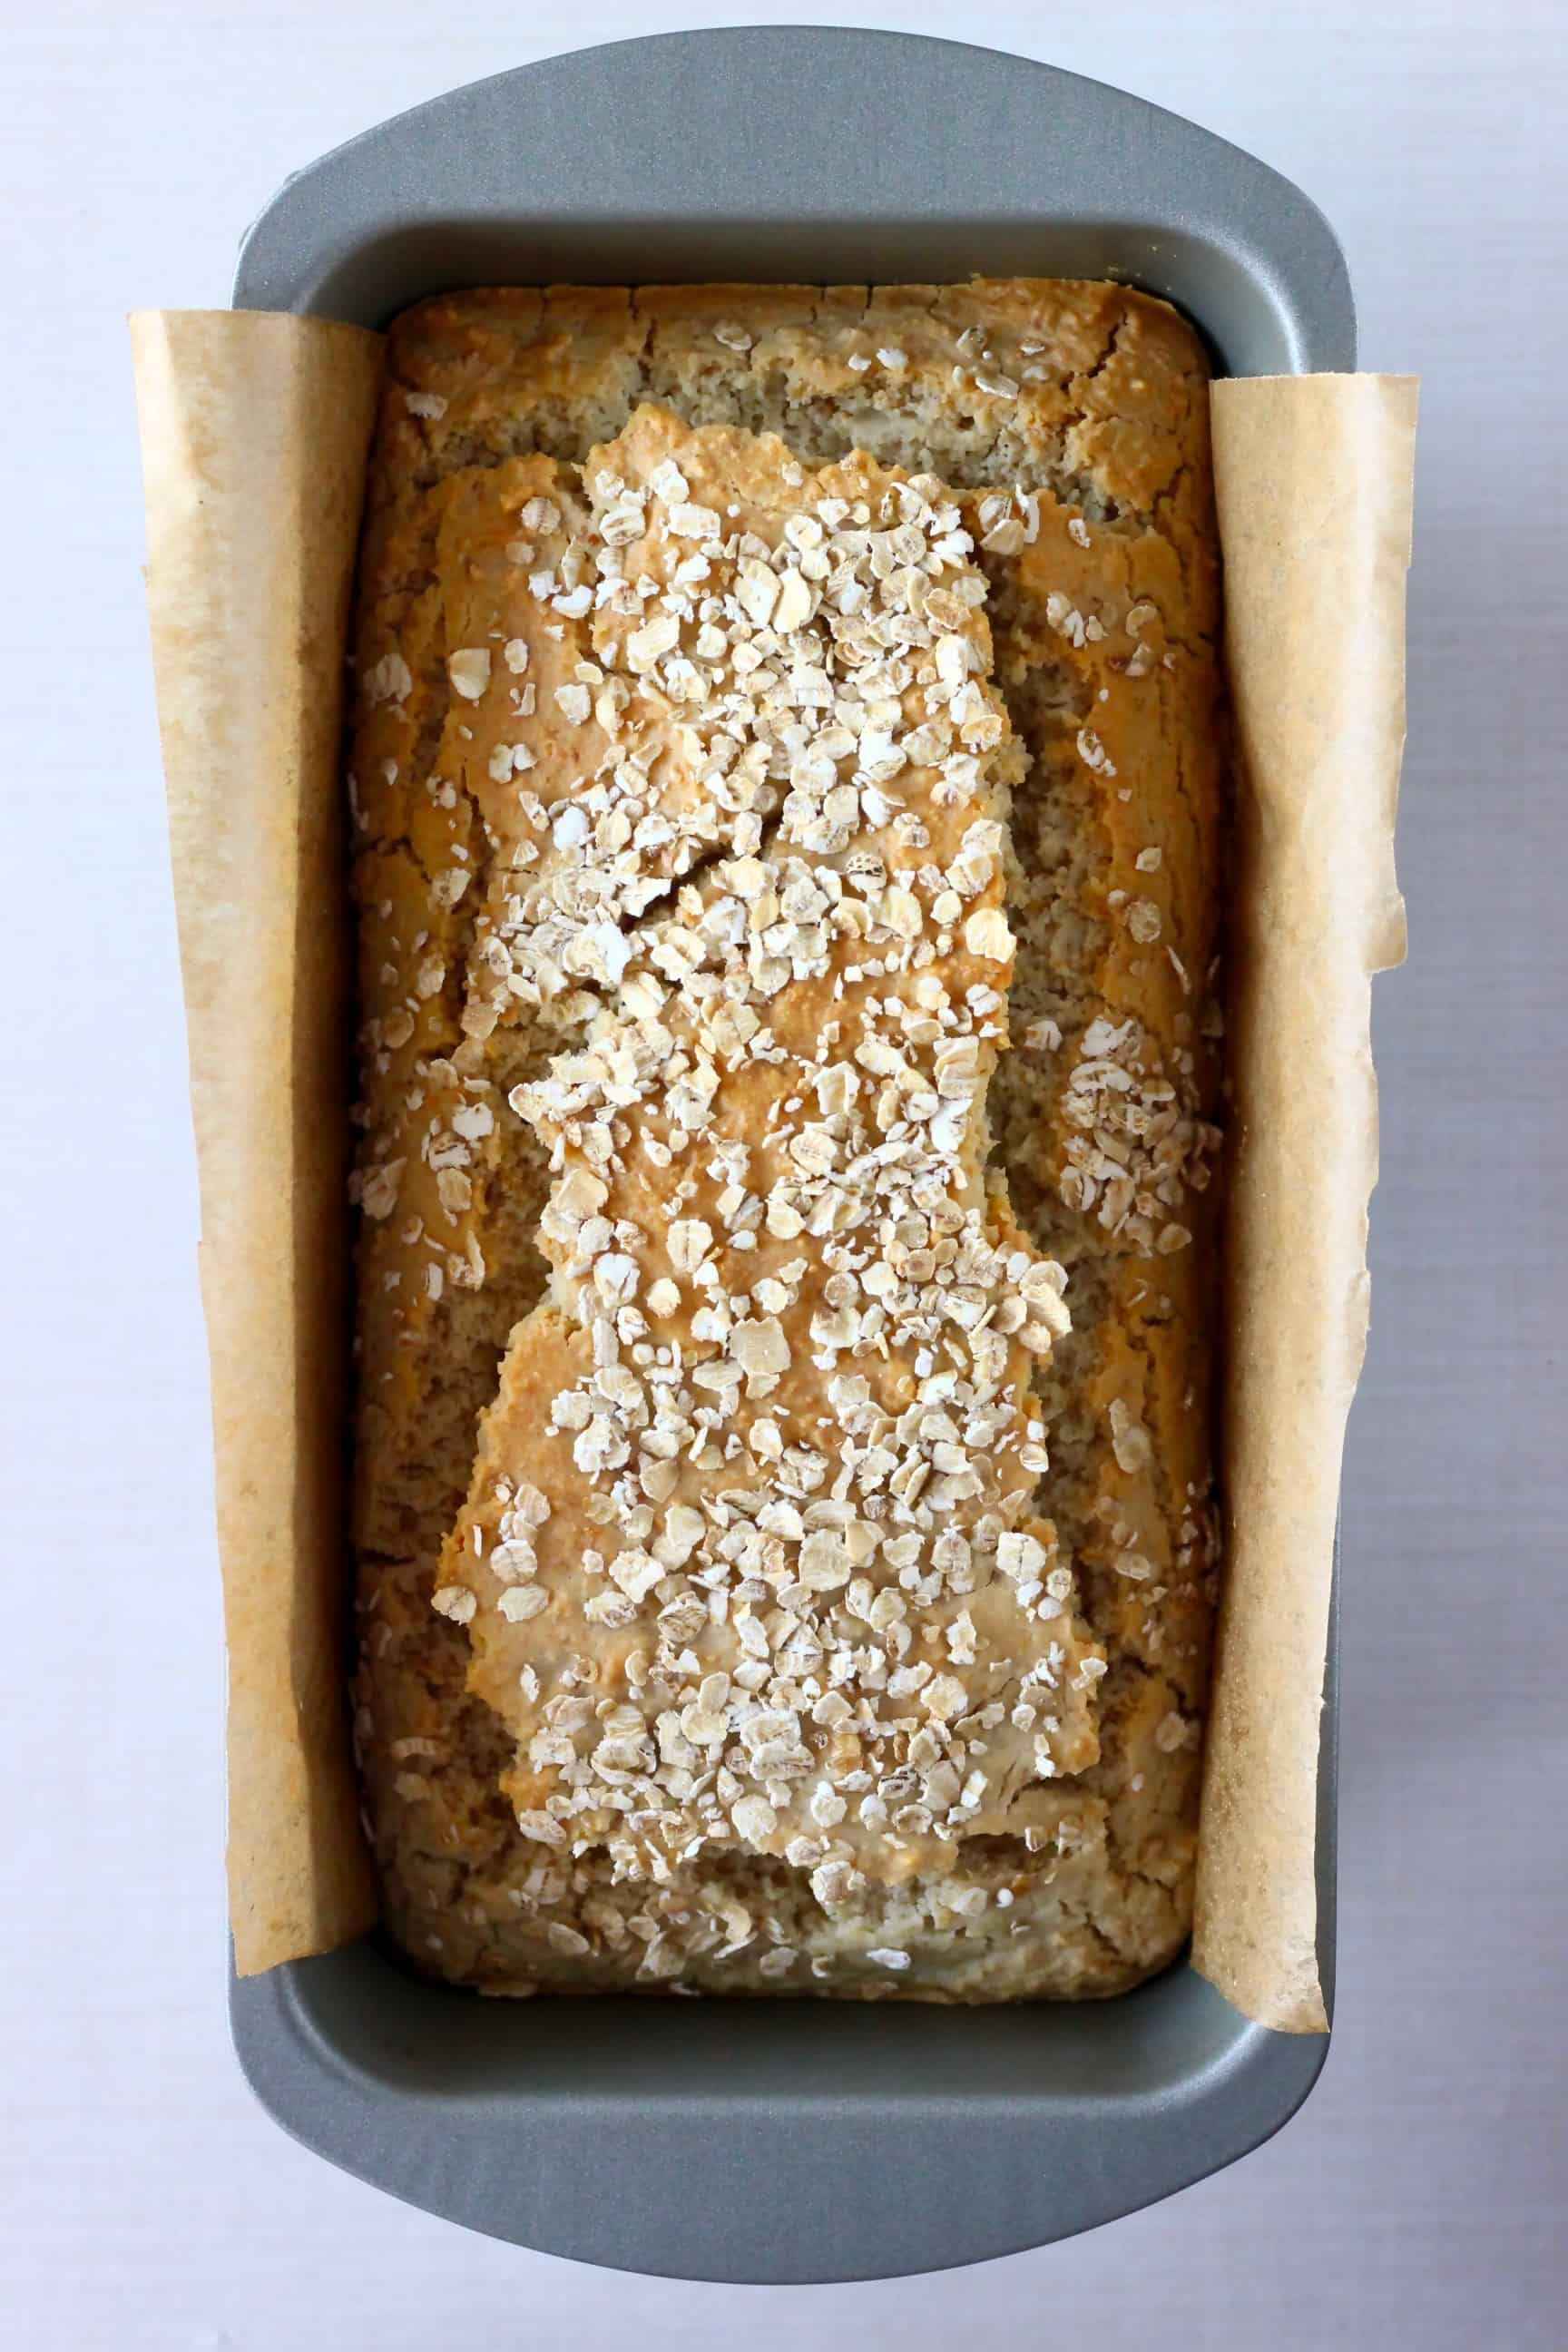 A loaf of gluten-free vegan oat bread topped with oats in a loaf tin